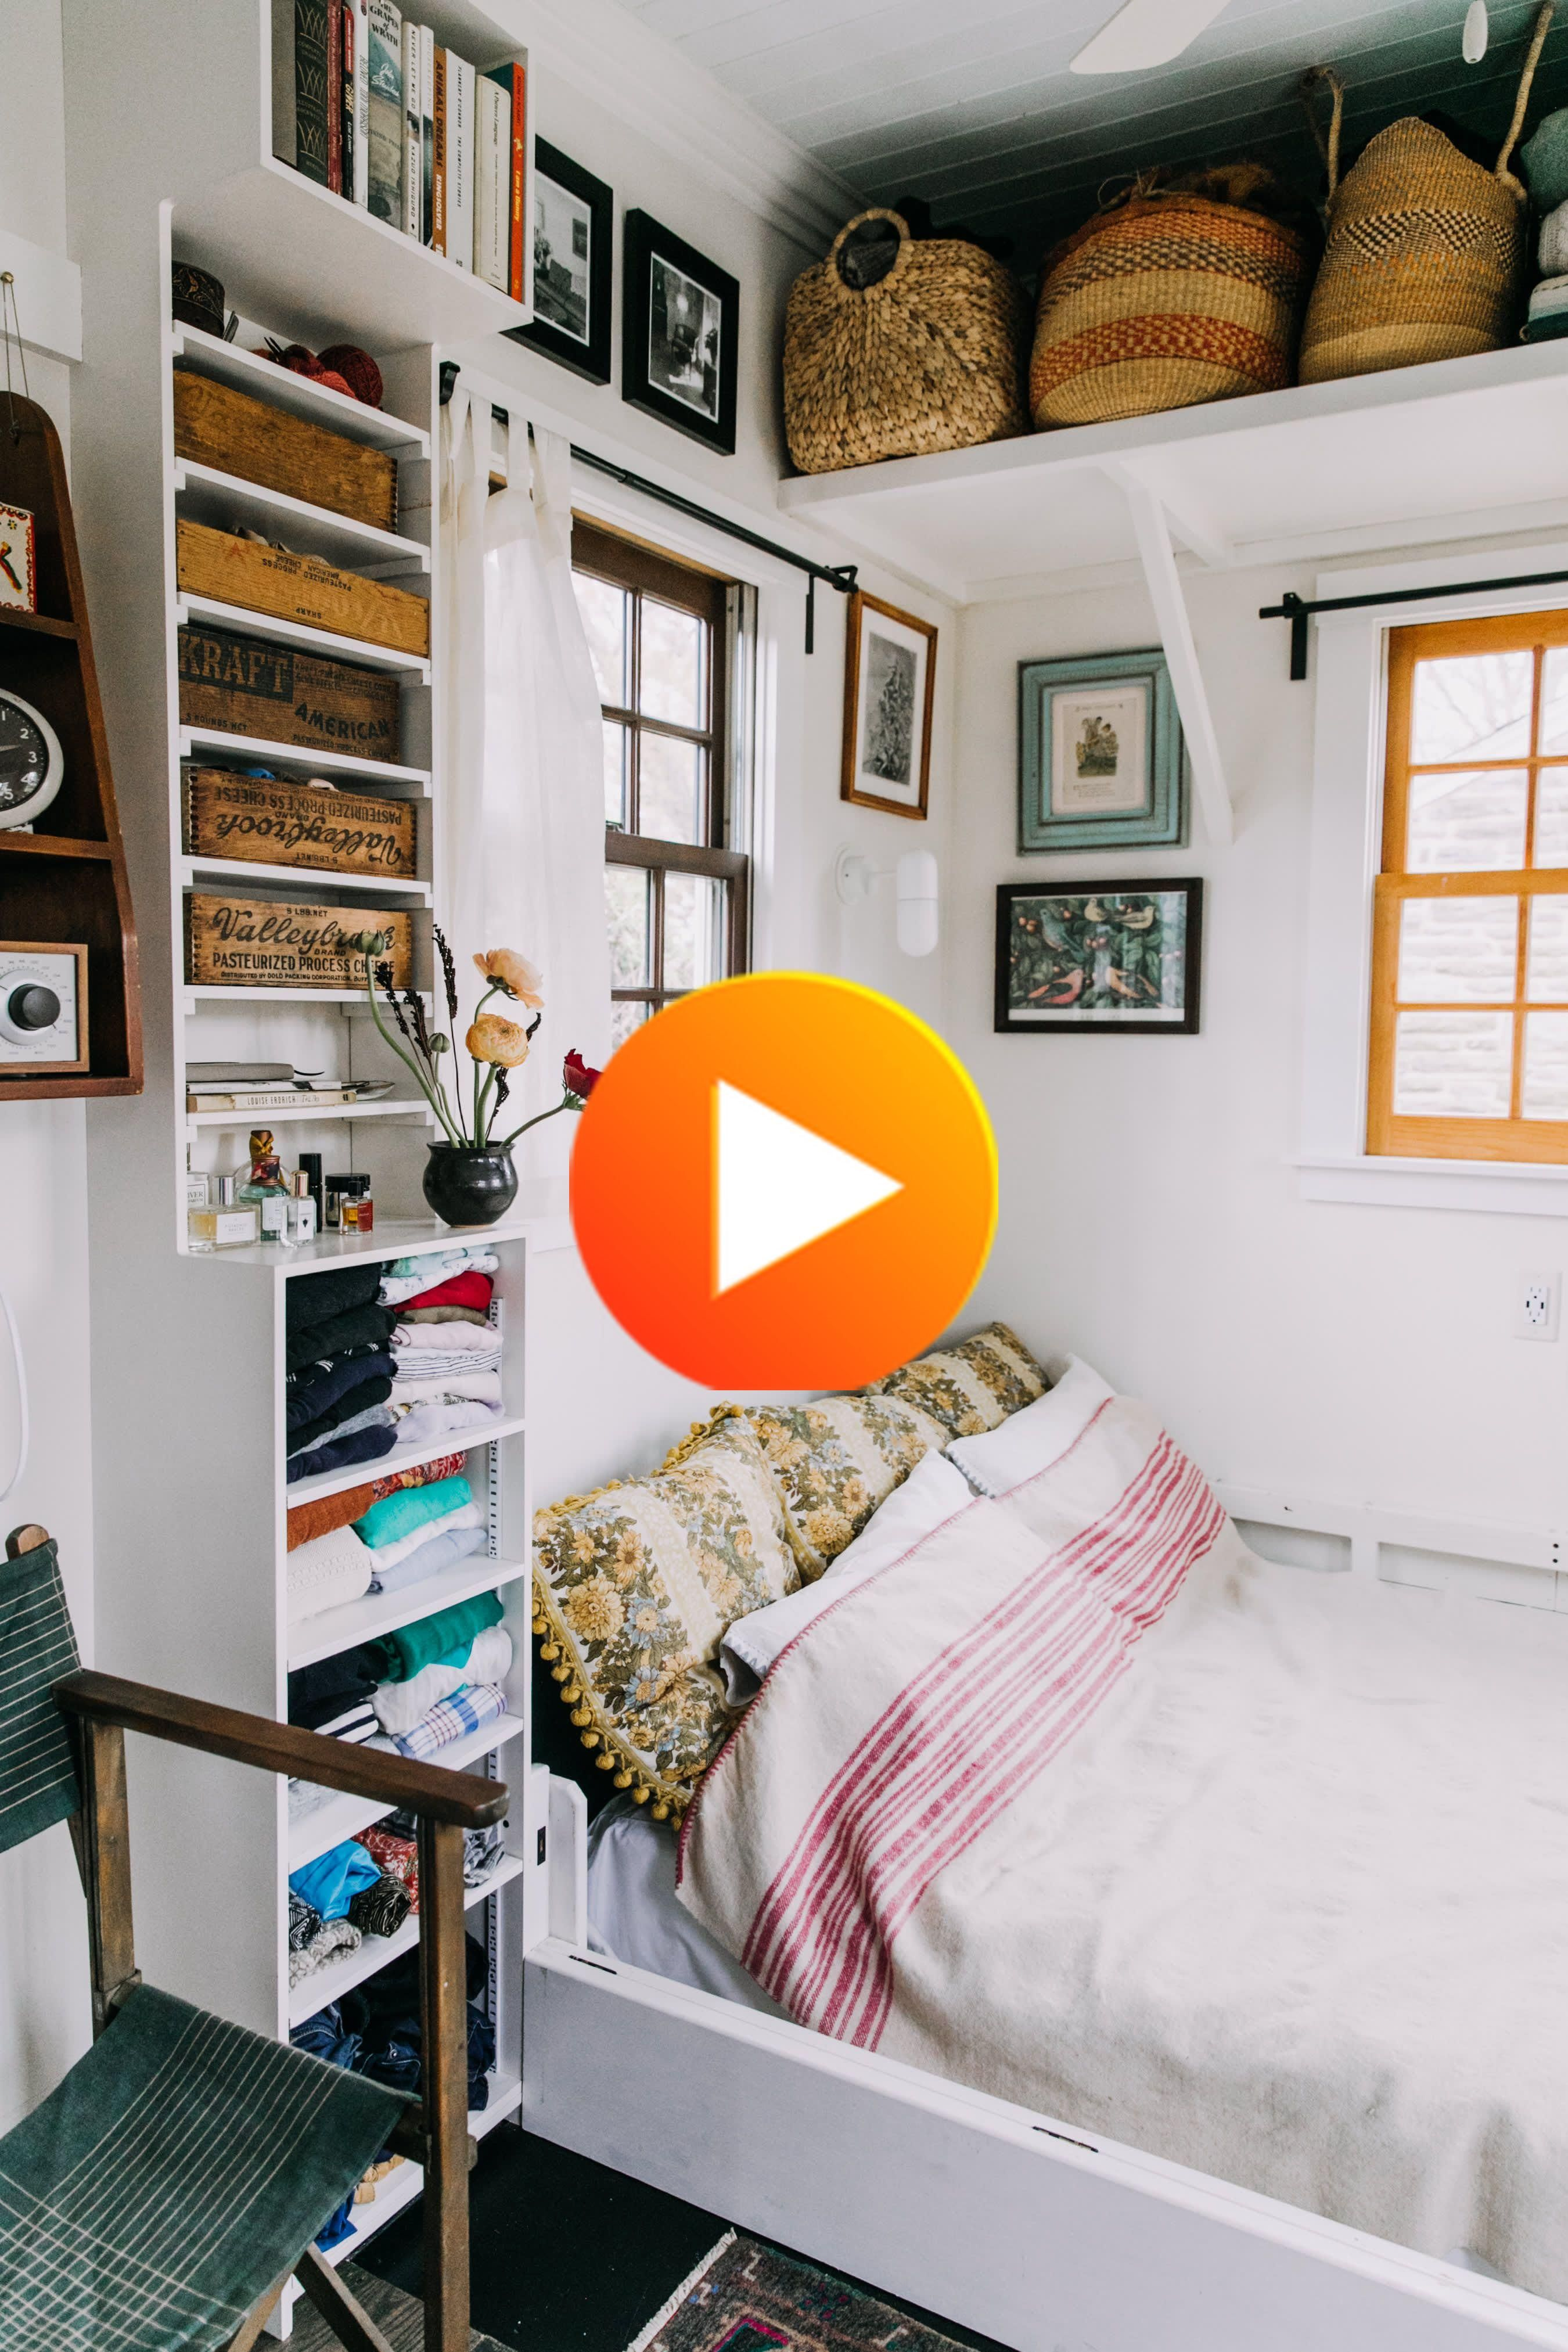 The Smartest Small Space Storage Ideas We Saw In 2018 In 2020 Small Spaces Small Space Storage Small House Tour